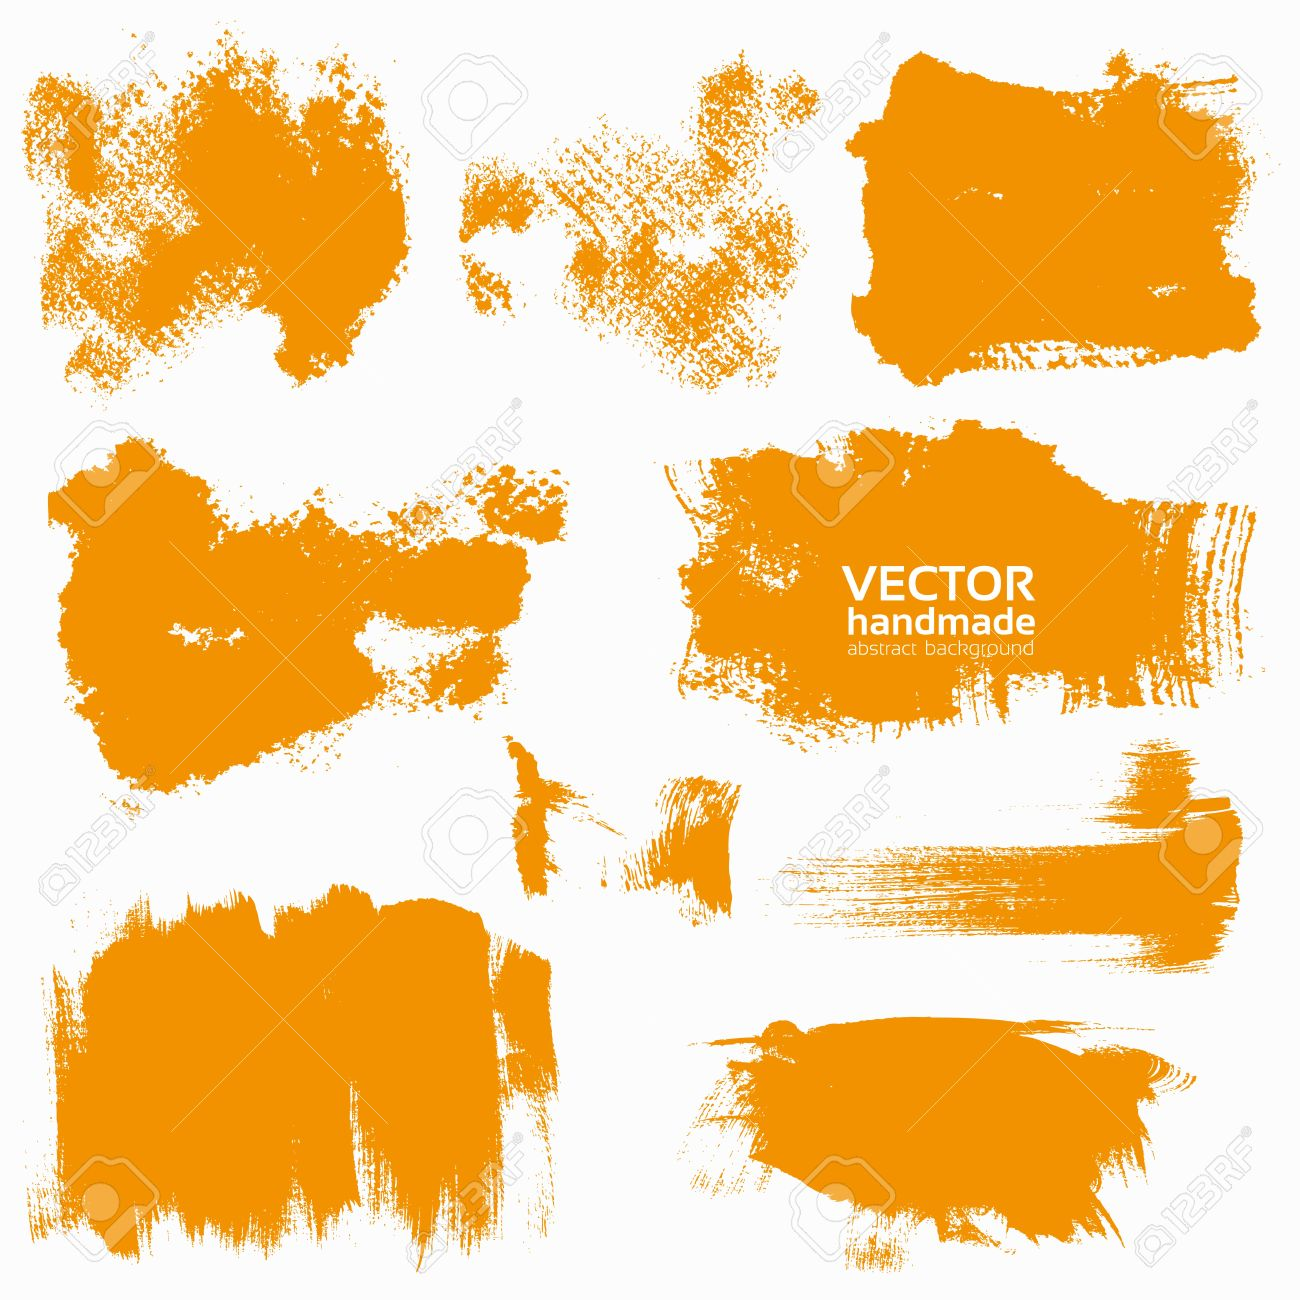 Abstract Orange Vector Set Backgrounds Draw By Brush And Ink.